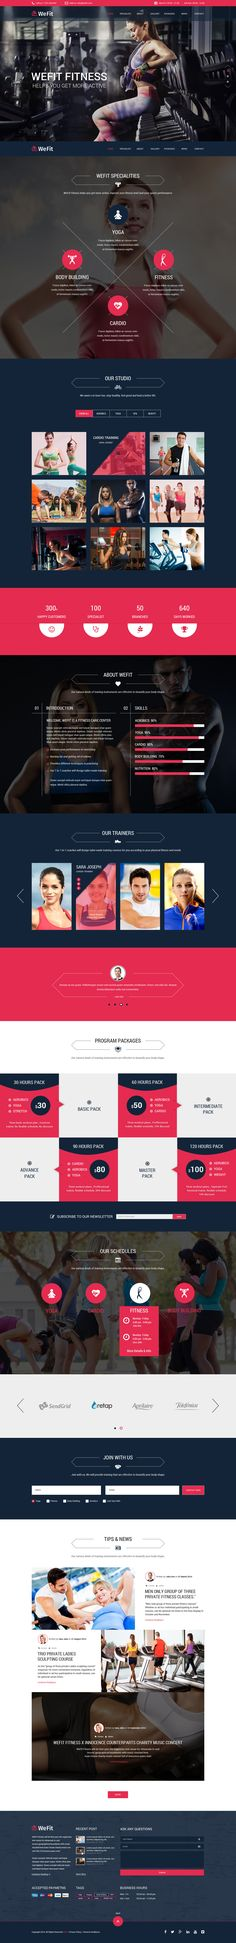 35 Fitness Website Designs Inspirations - Tap the pin if you love super heroes too! Cause guess what? you will LOVE these super hero fitness shirts! Web Layout, Layout Design, Cv Web, Fitness Websites, Sports Website, Fitness Design, Responsive Web Design, Website Design Inspiration, Interface Design